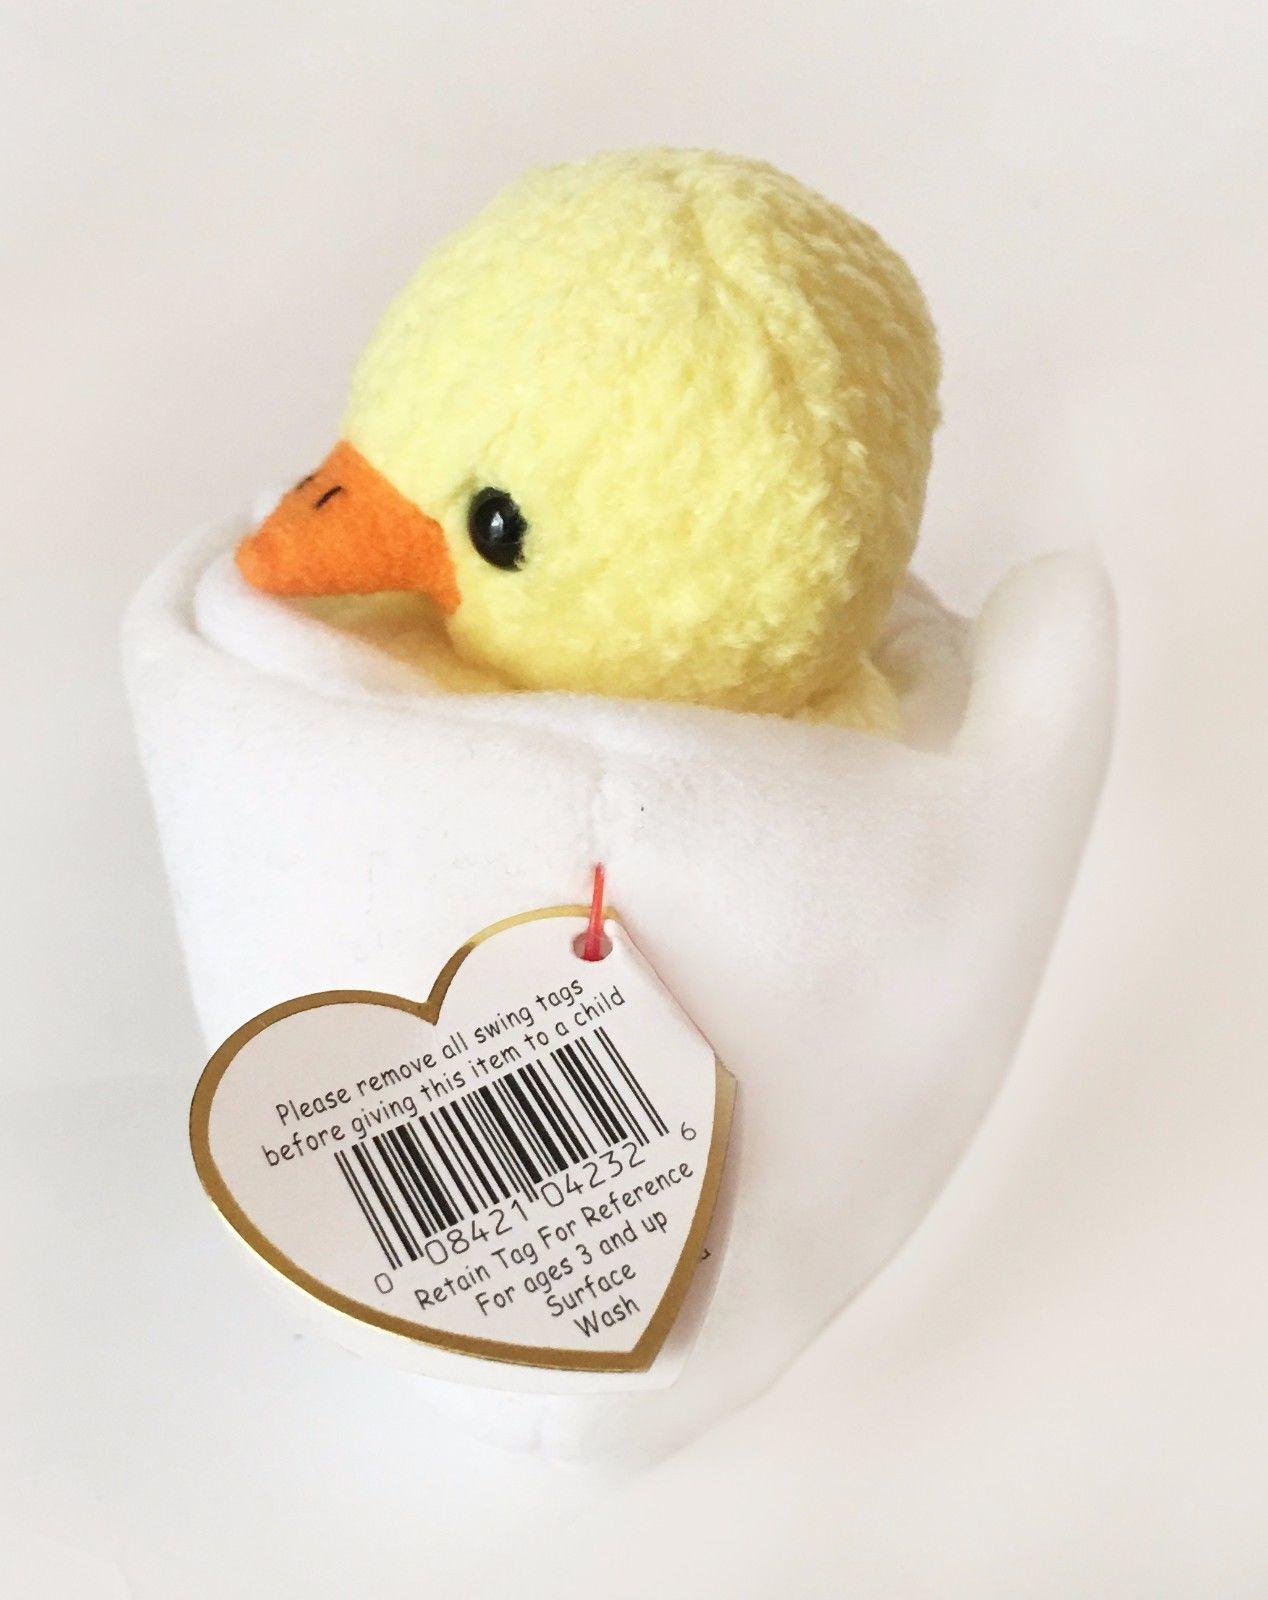 ... TY Beanie Baby Rare Eggbert Chick in Egg with Gasport Hang Tag Error ... 6647562c9989